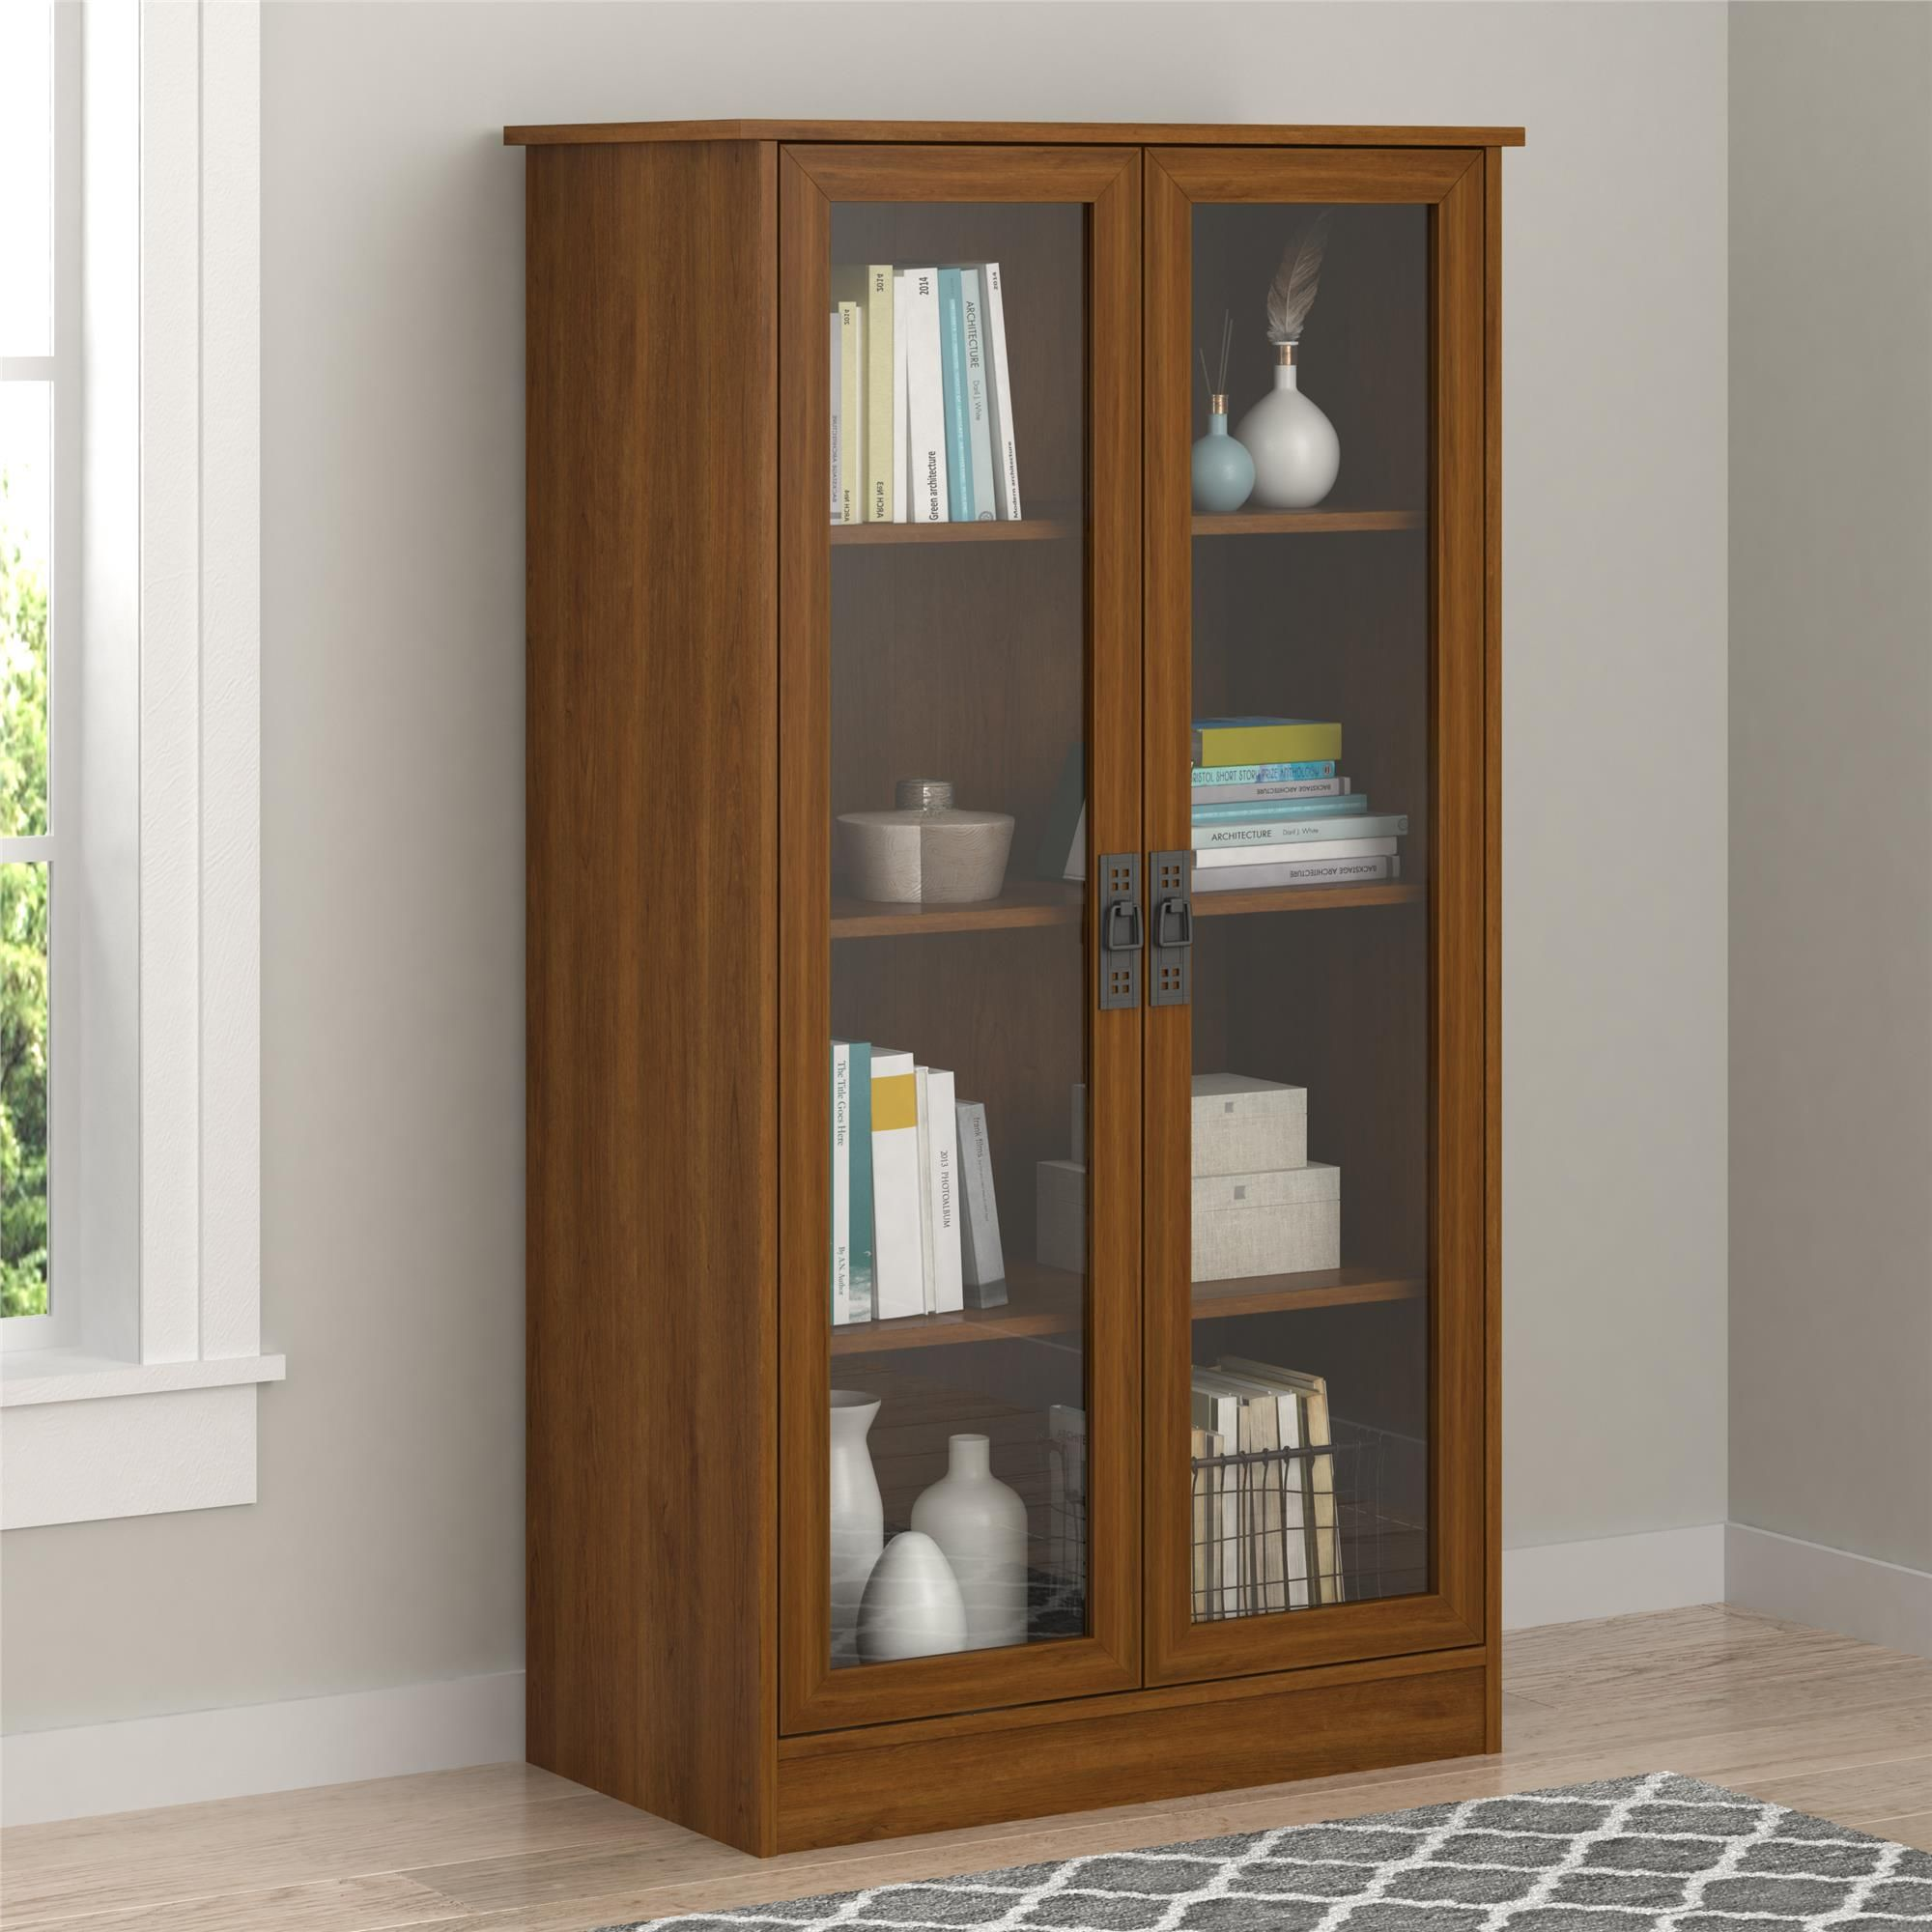 Dorel Home Furnishings Quinton Point Brown Oak Bookcase With Glass